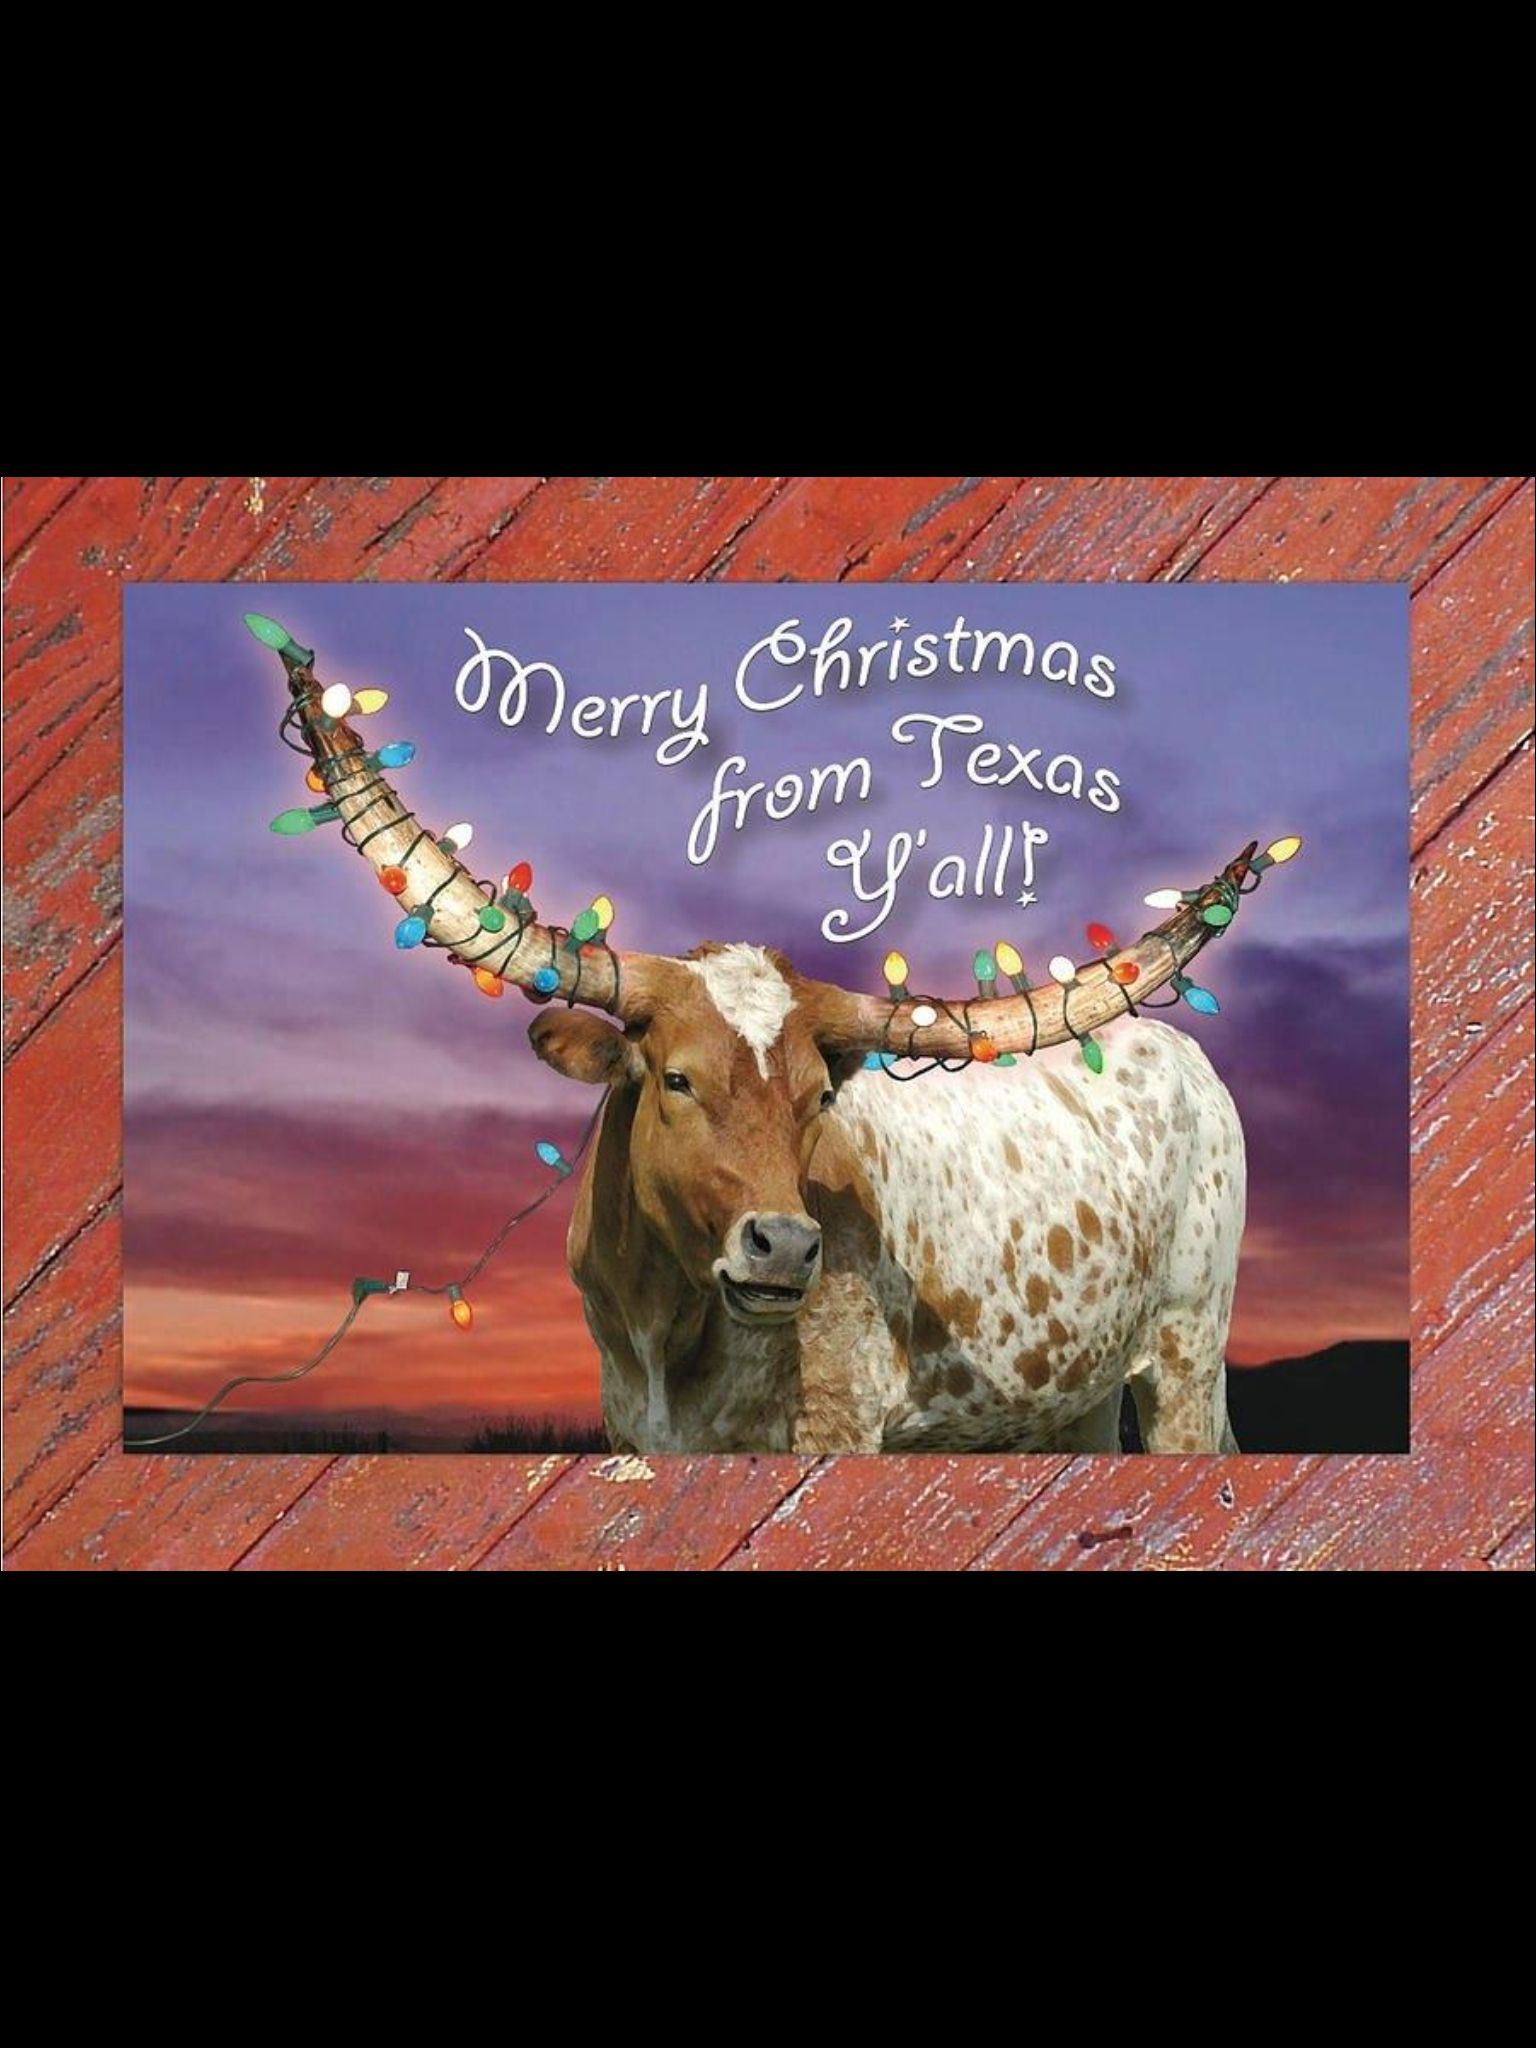 Texas Christmas Cards.Texas Christmas Card Fun Stuff Christmas Cards Cowboy